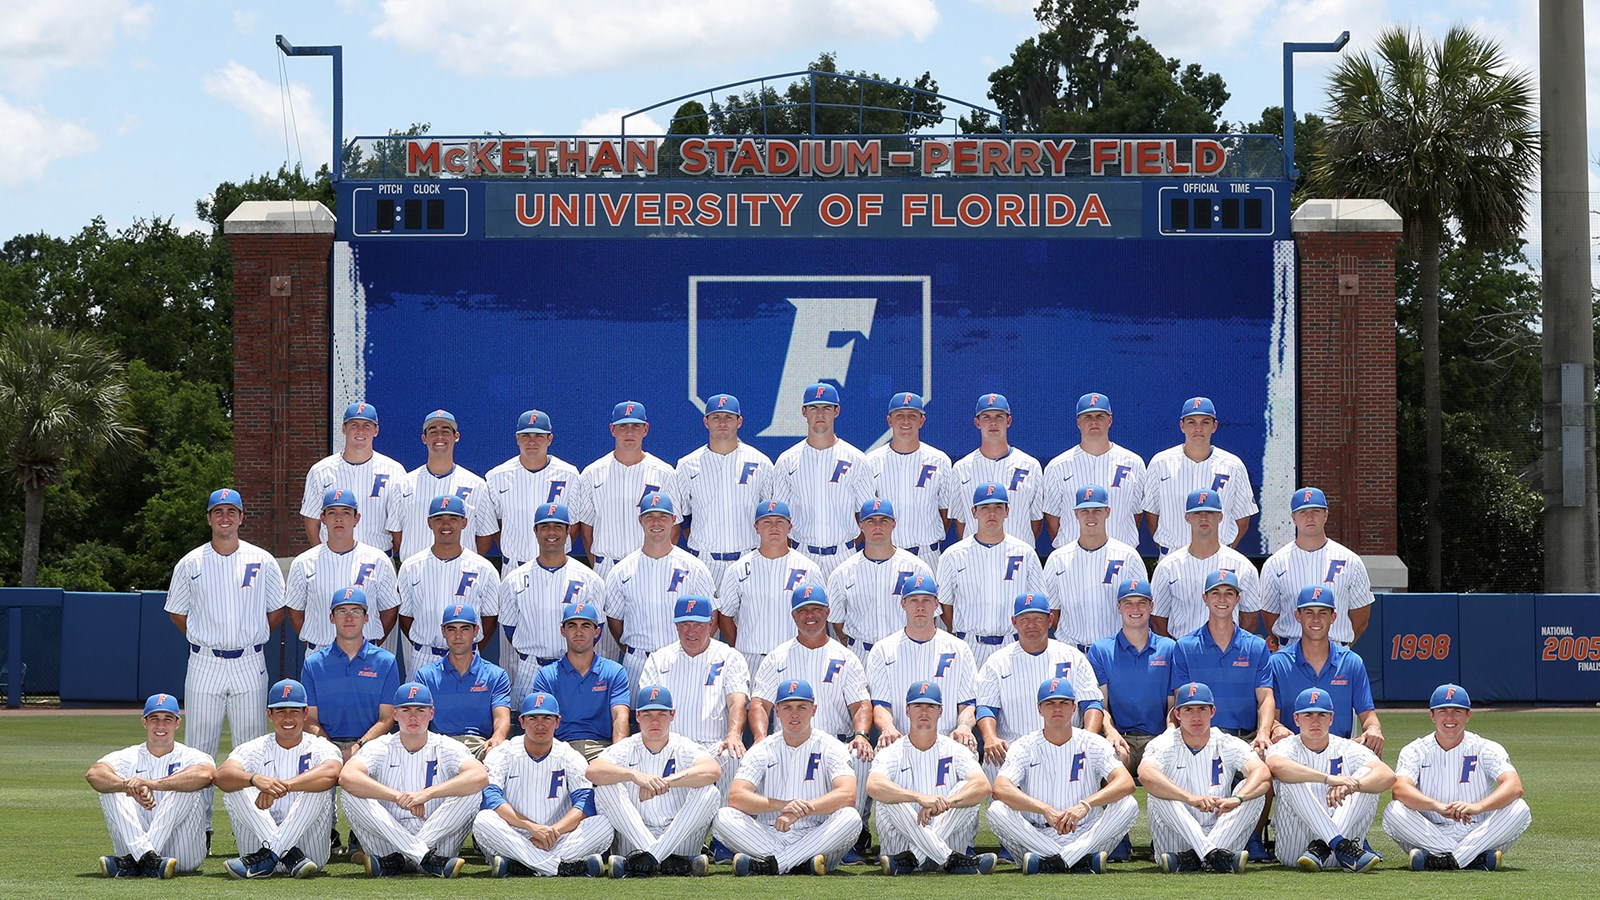 2019 Baseball Roster Florida Gators